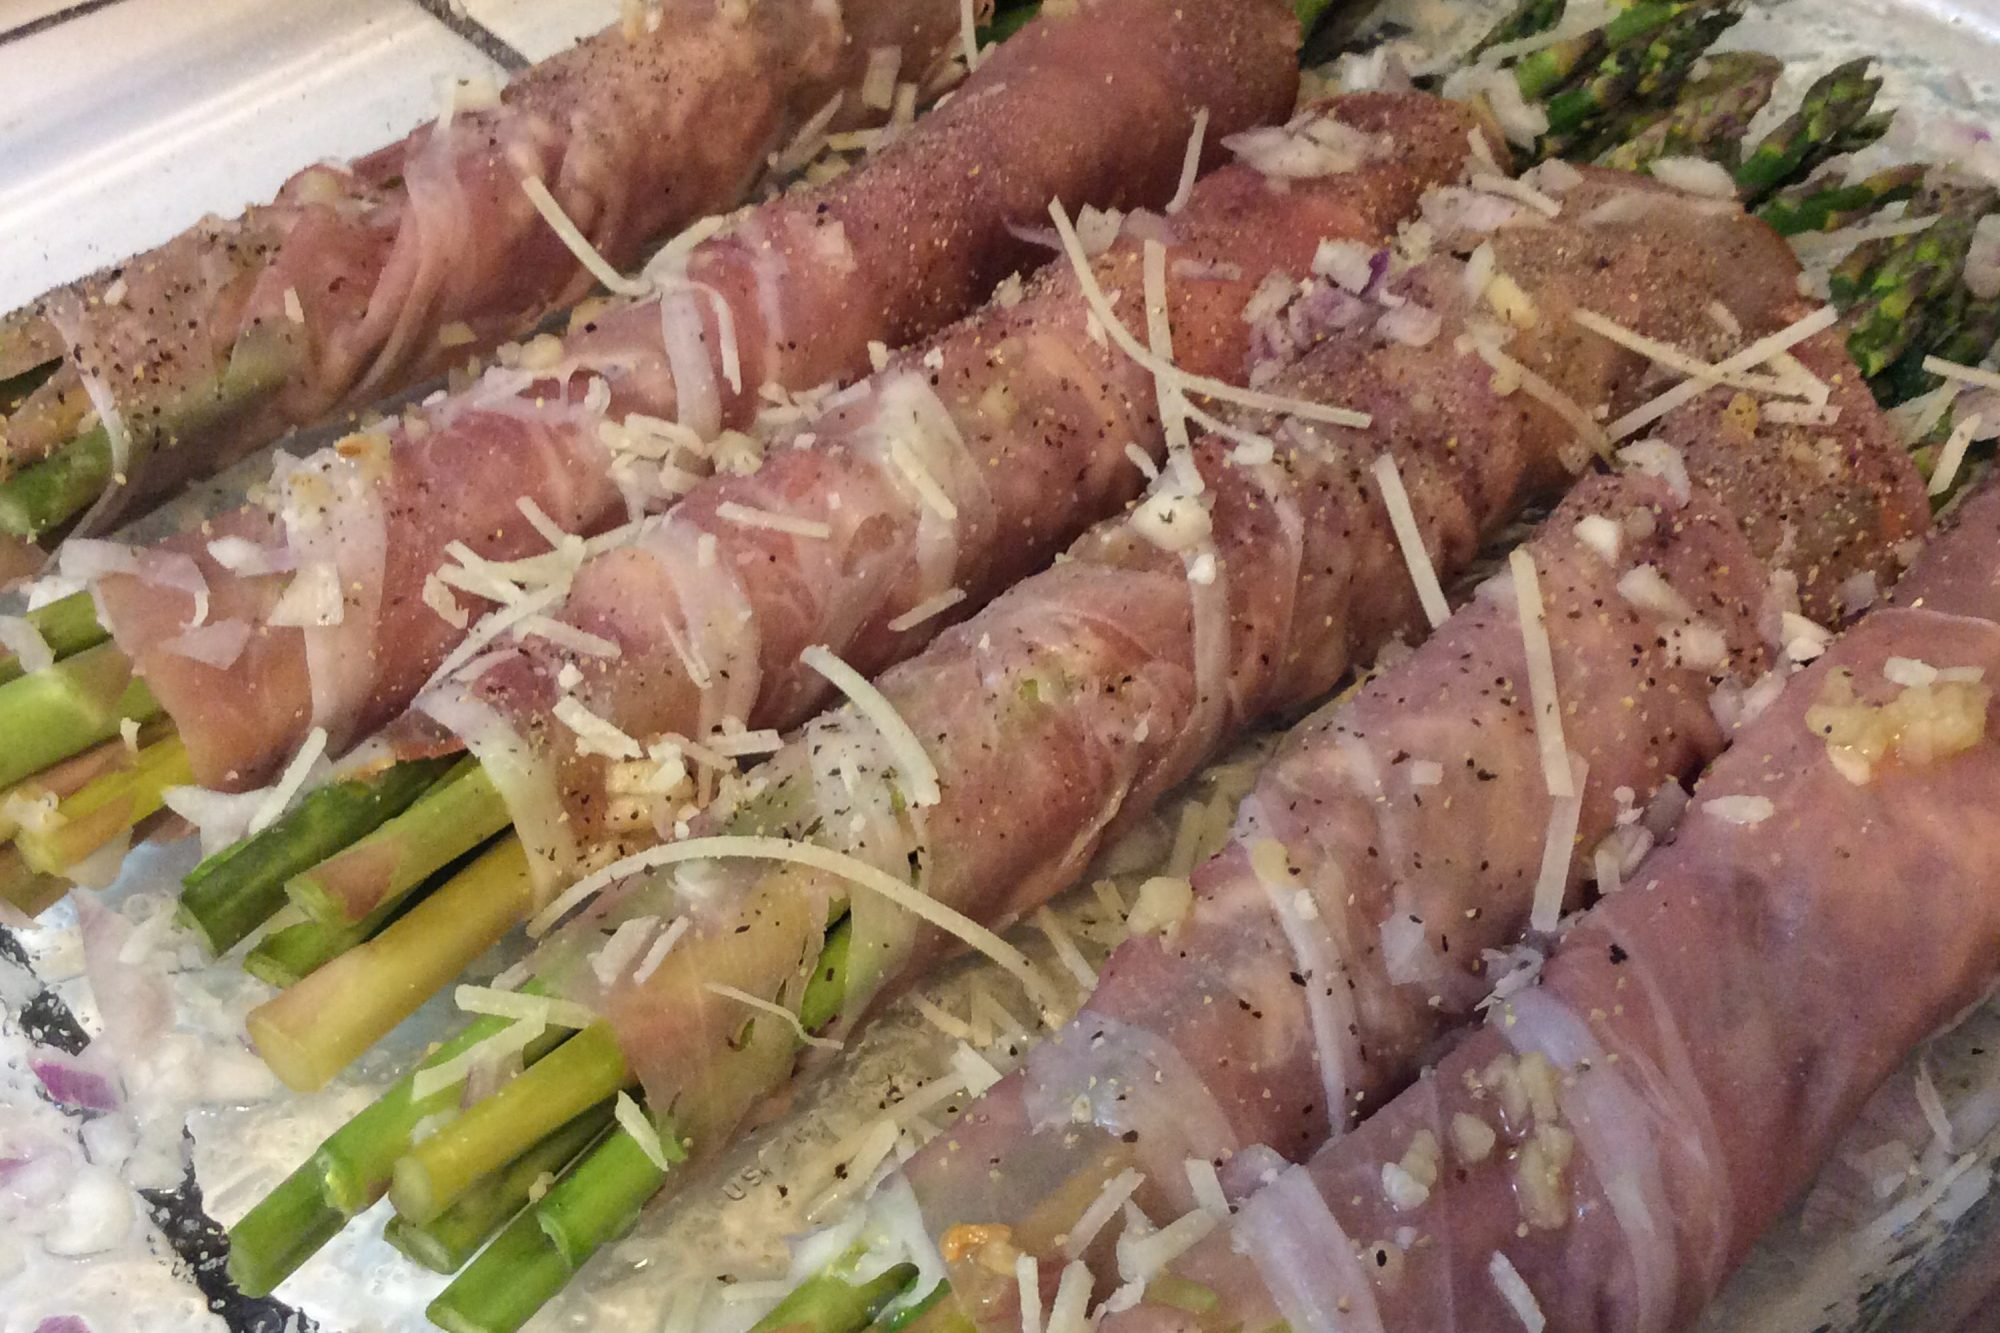 Cold Asparagus with Prociutto and Lemon